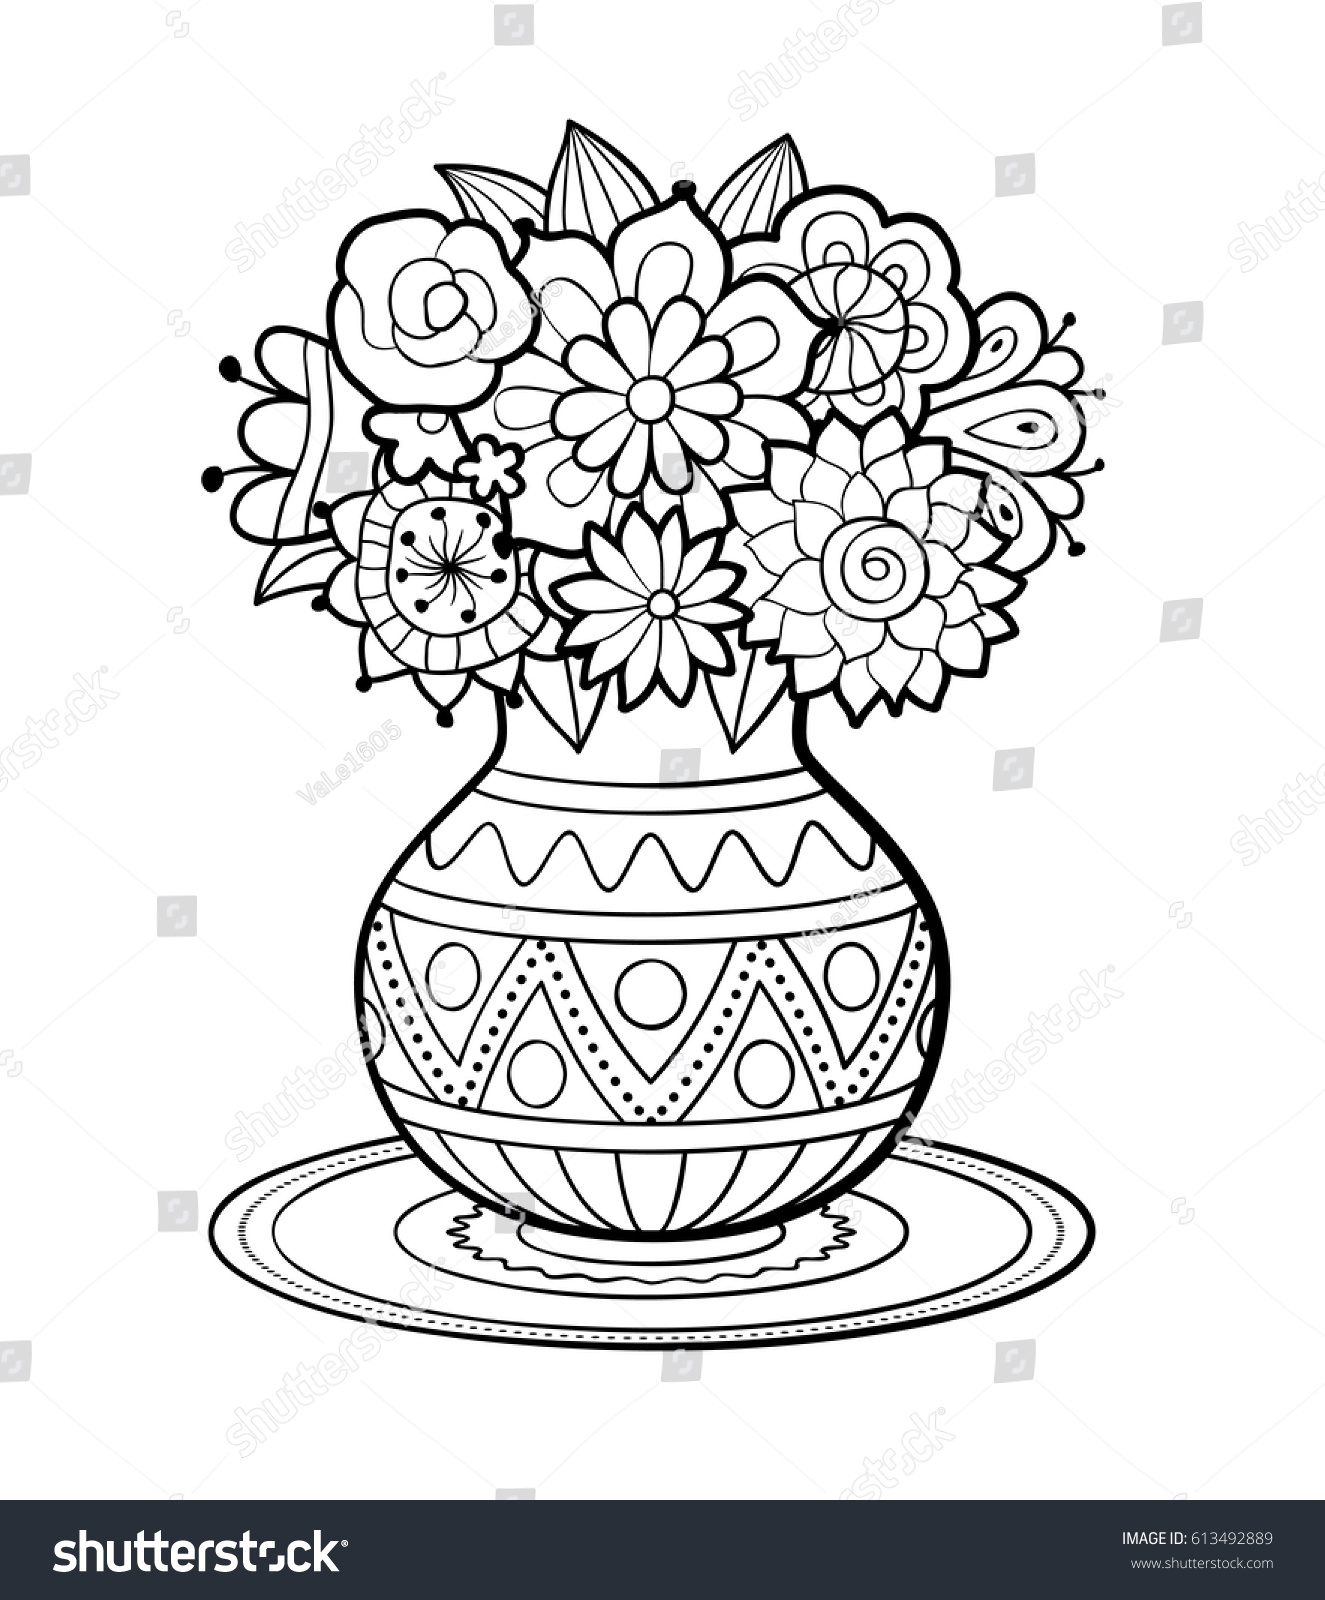 Vase flowers geometric ornament standing on stock vector 613492889 vase of flowers with geometric ornament standing on round napkin black and white outline vector reviewsmspy